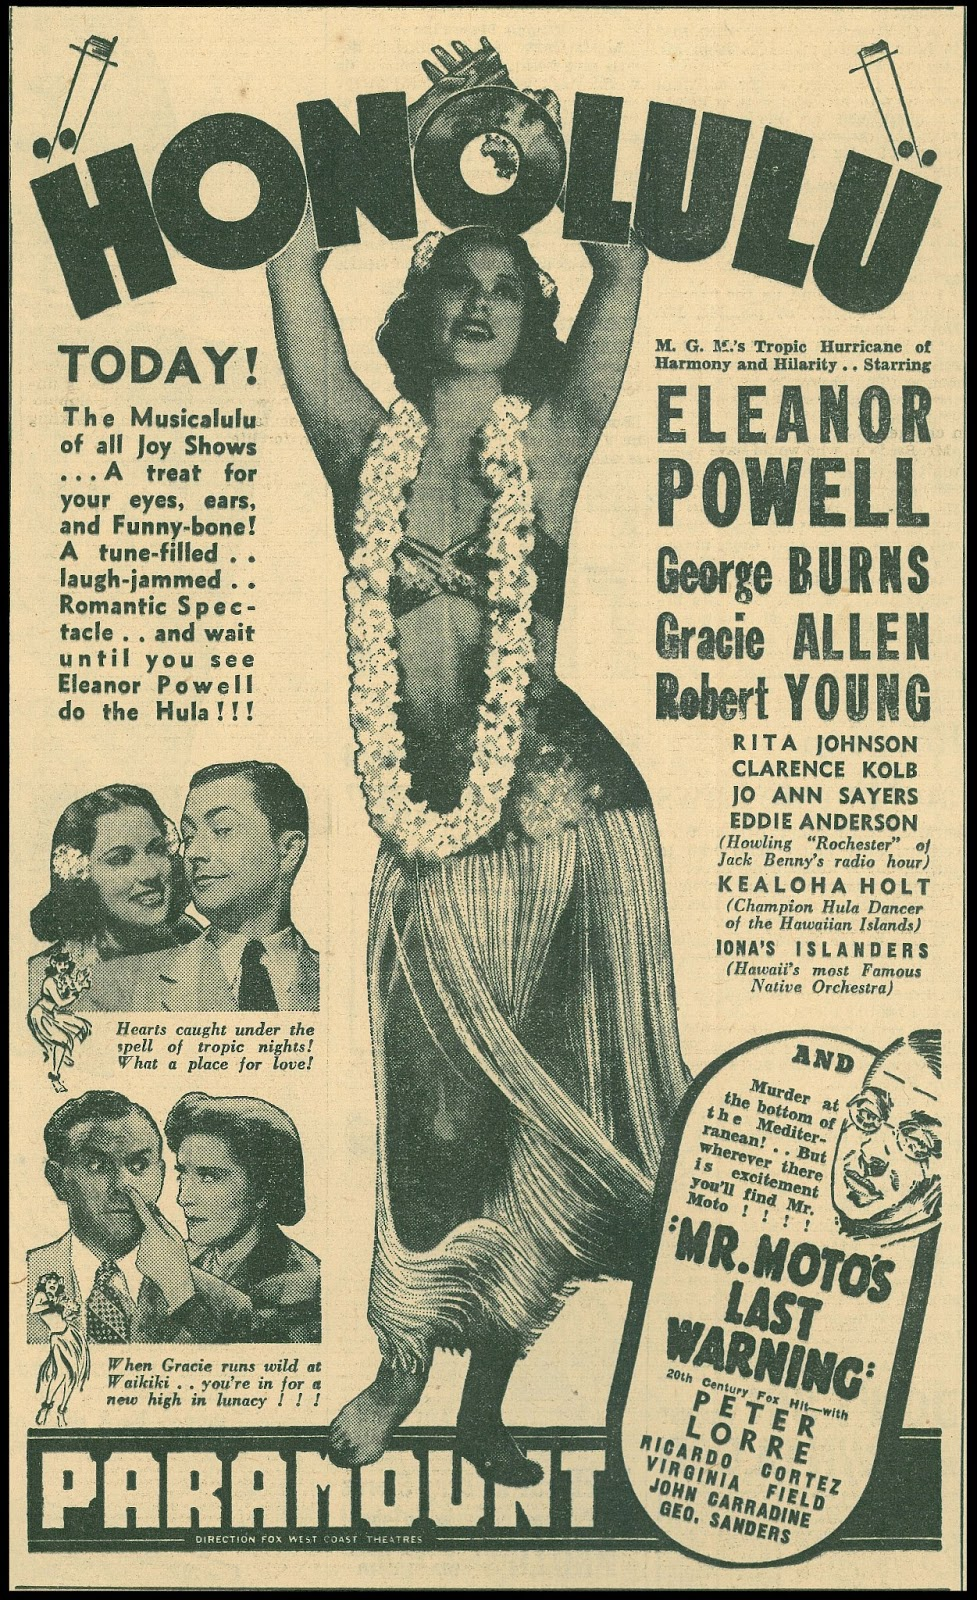 Honolulu Film Poster Featuring Peter Lorre and Mr. Moto's Last Warning